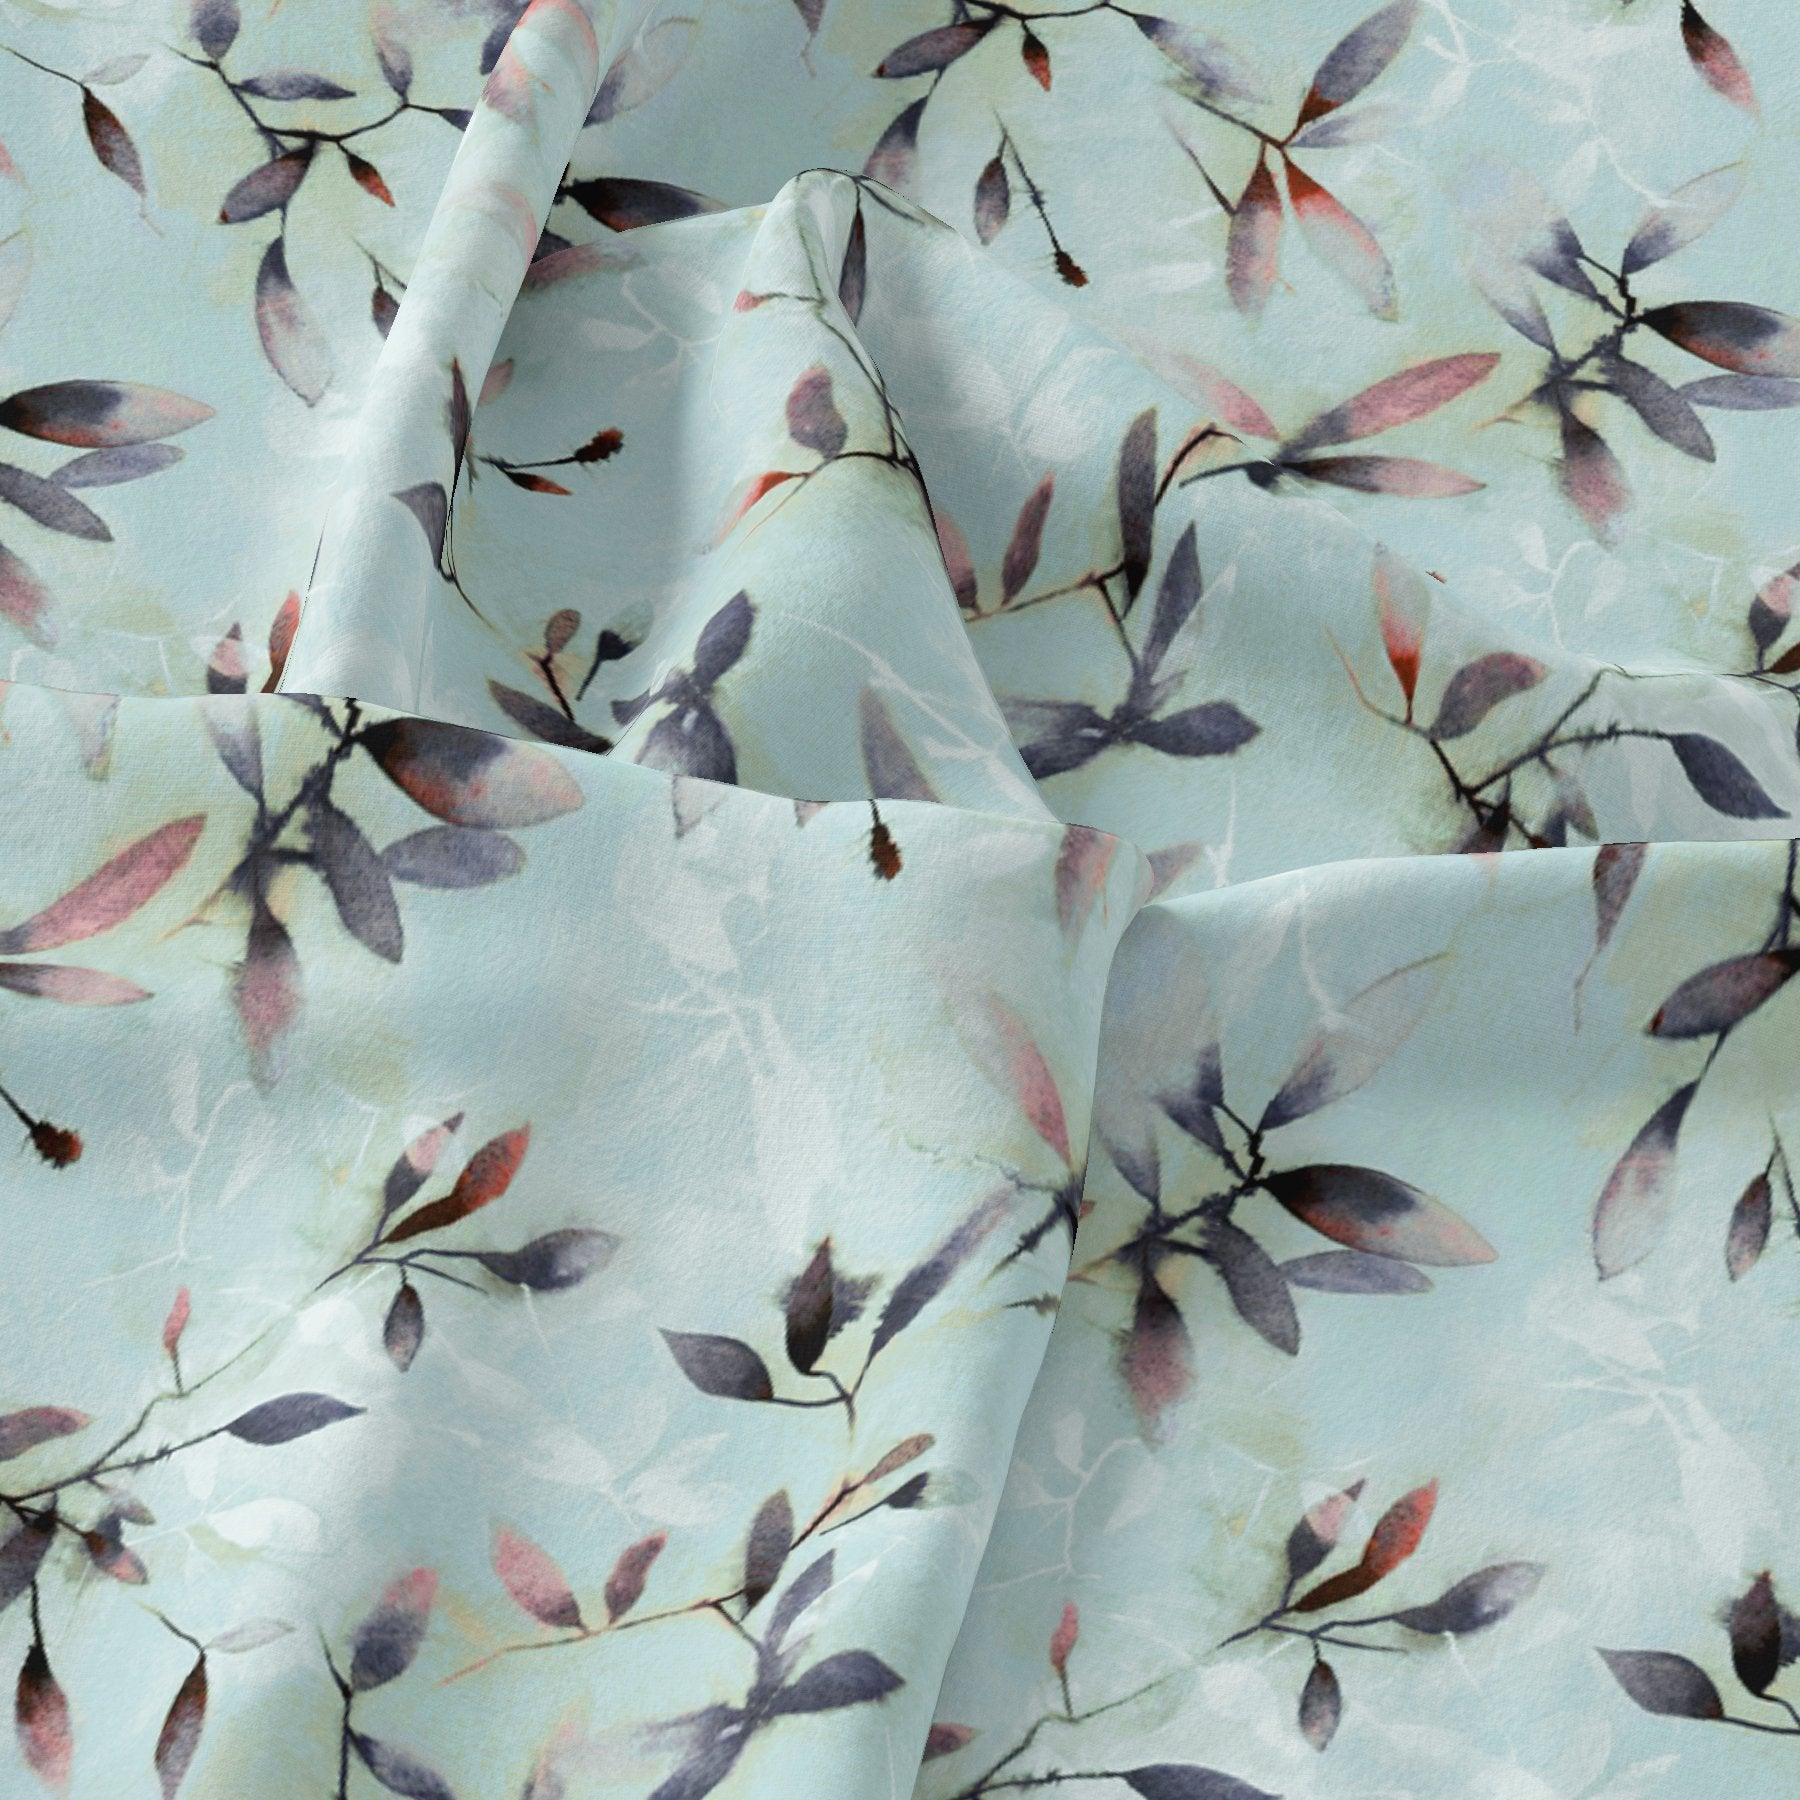 Bluish Thin And Light Leaves Digital Printed Fabric - Weightless